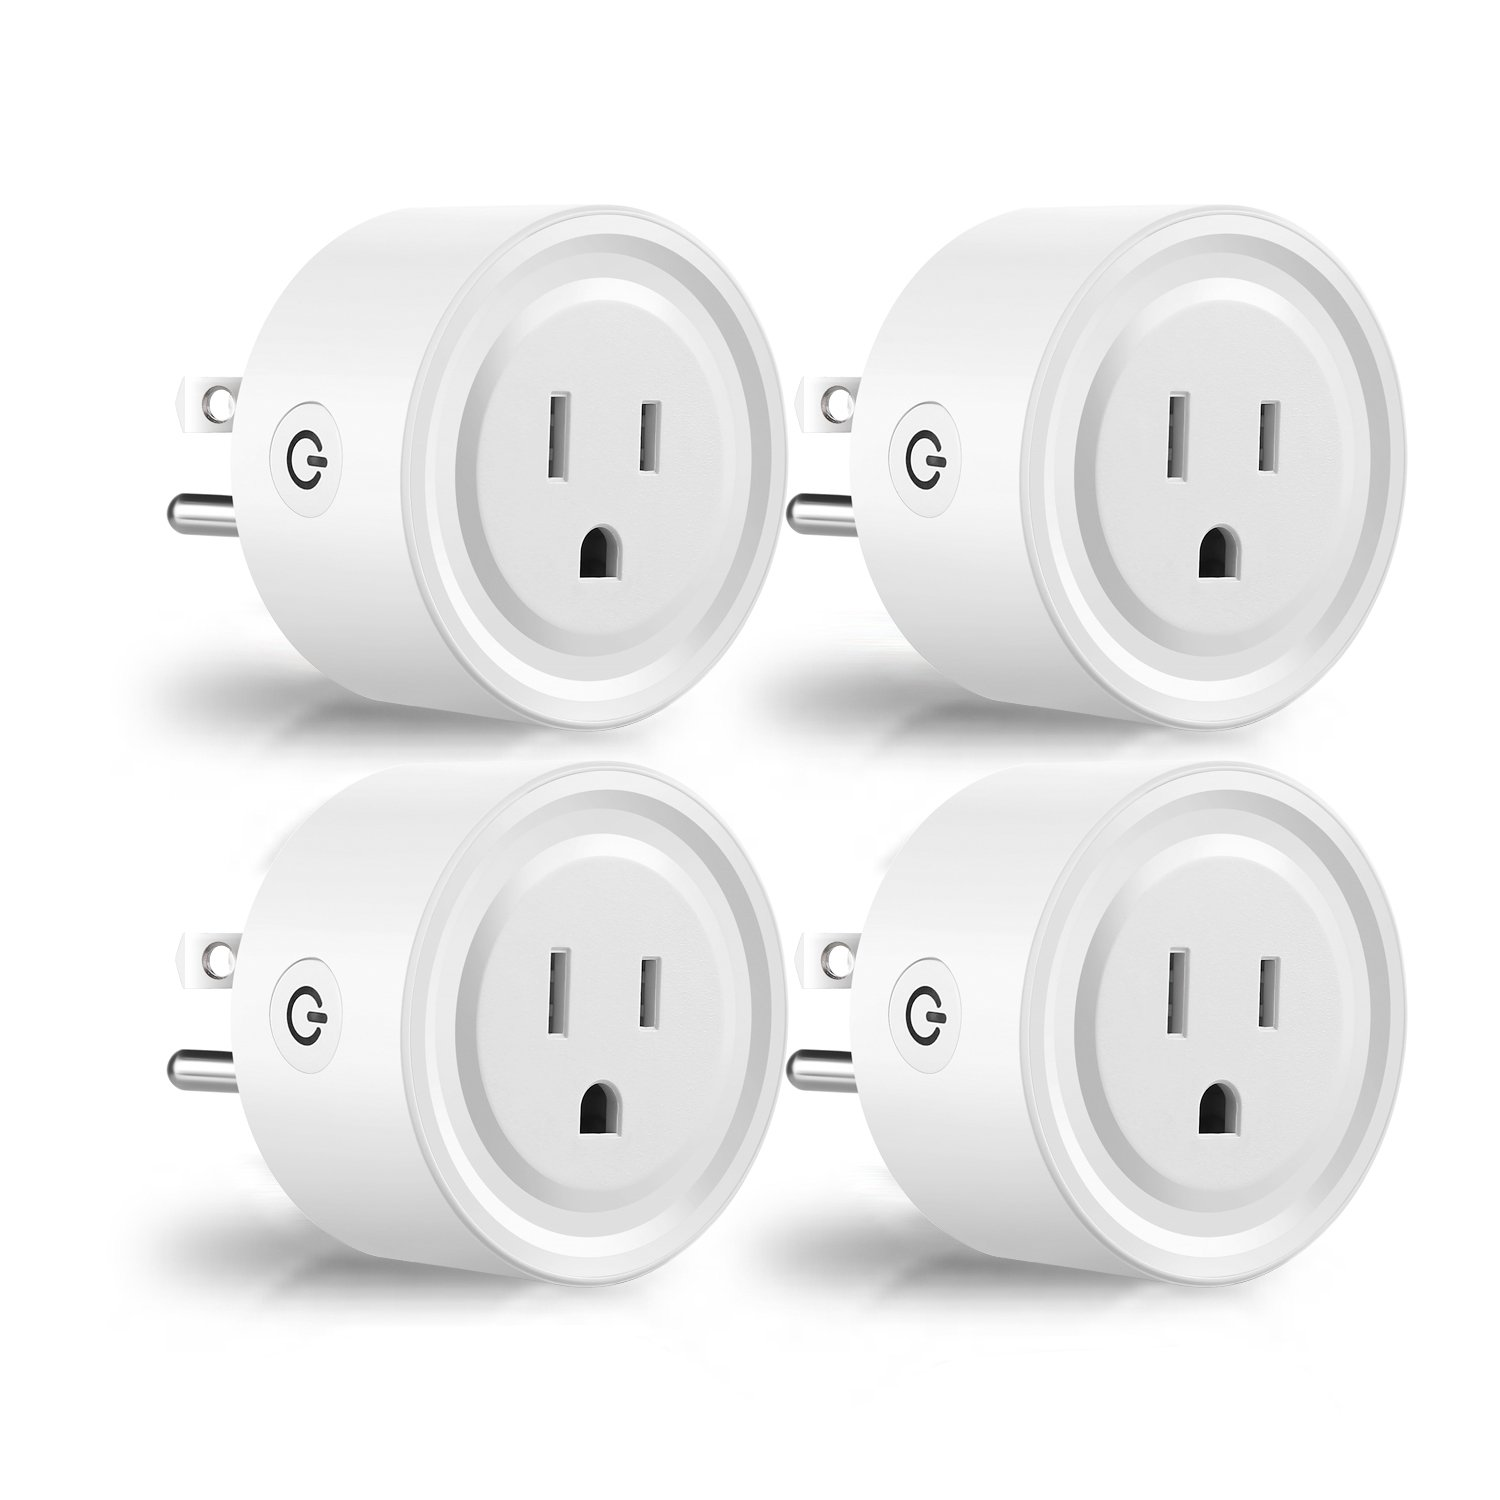 ACOMPATIBLE Wi-Fi Smart Plug Works with Google Assistant and IFTTT – Remote Control Your Devices Anytime, Anywhere via Your Phone - Timing and Count Down (White 4 Pack)